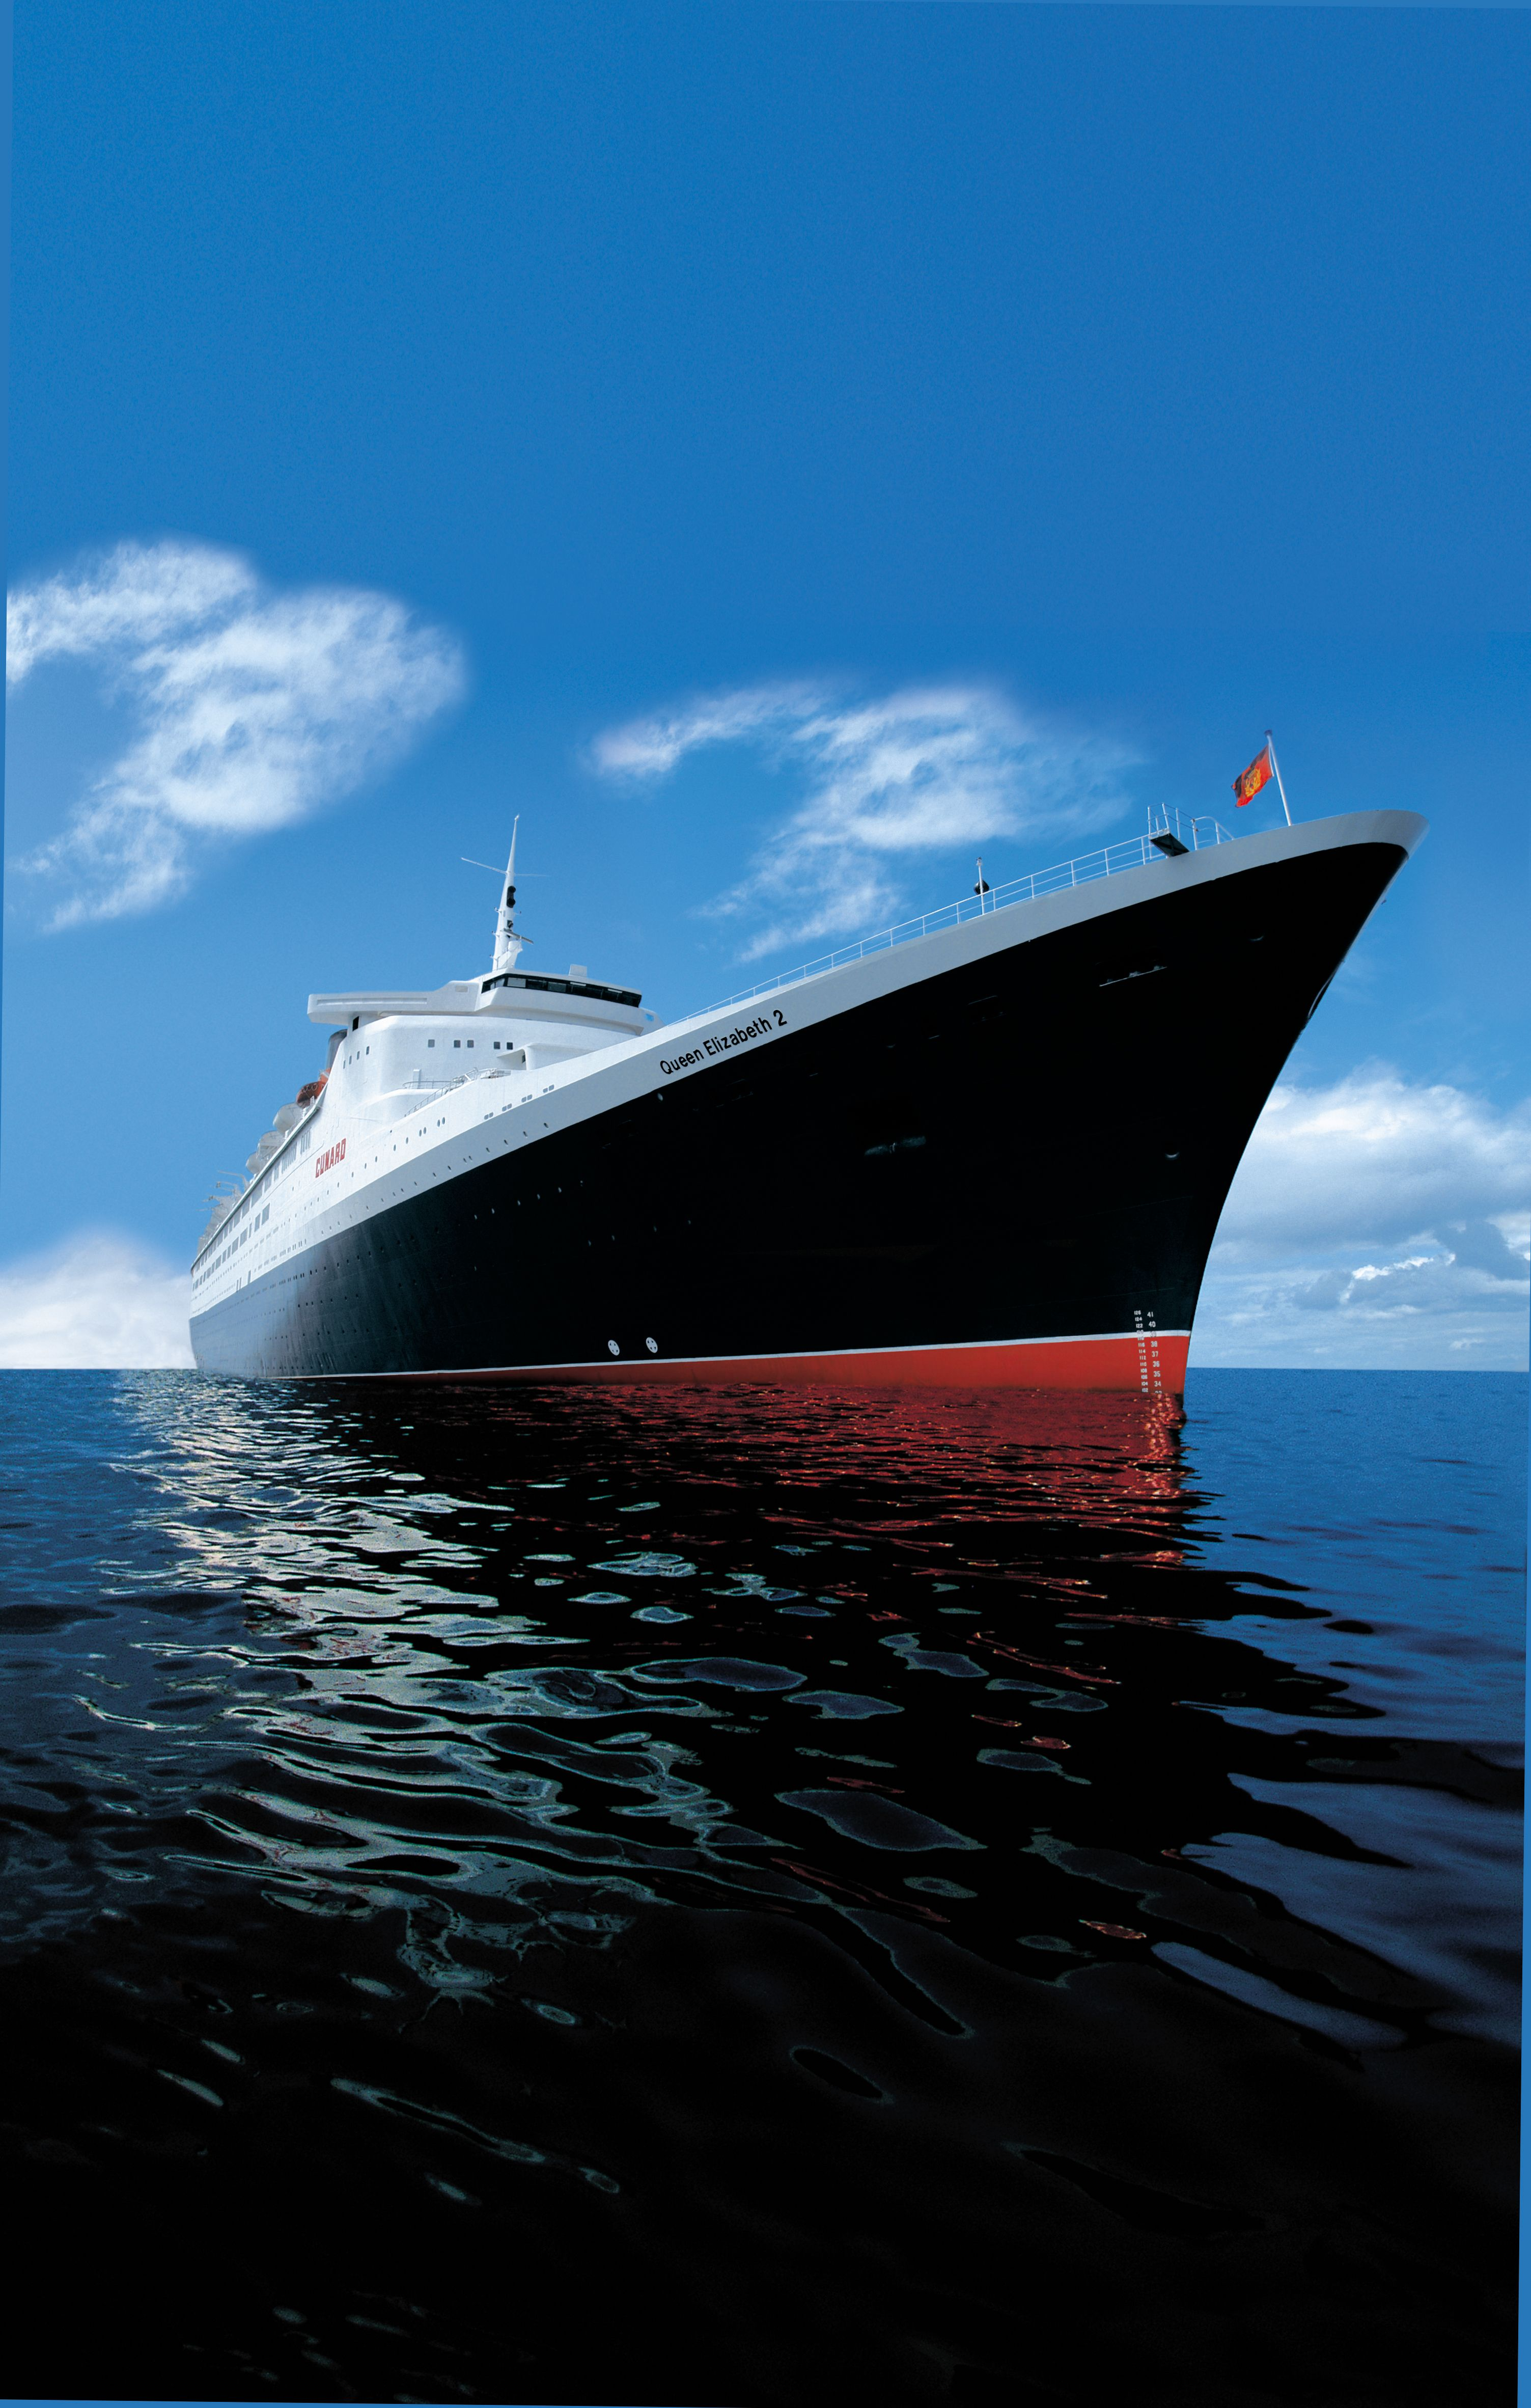 QE2 Cruise Liner Most beautiful ship in the world I worked on her and was able to travel the world